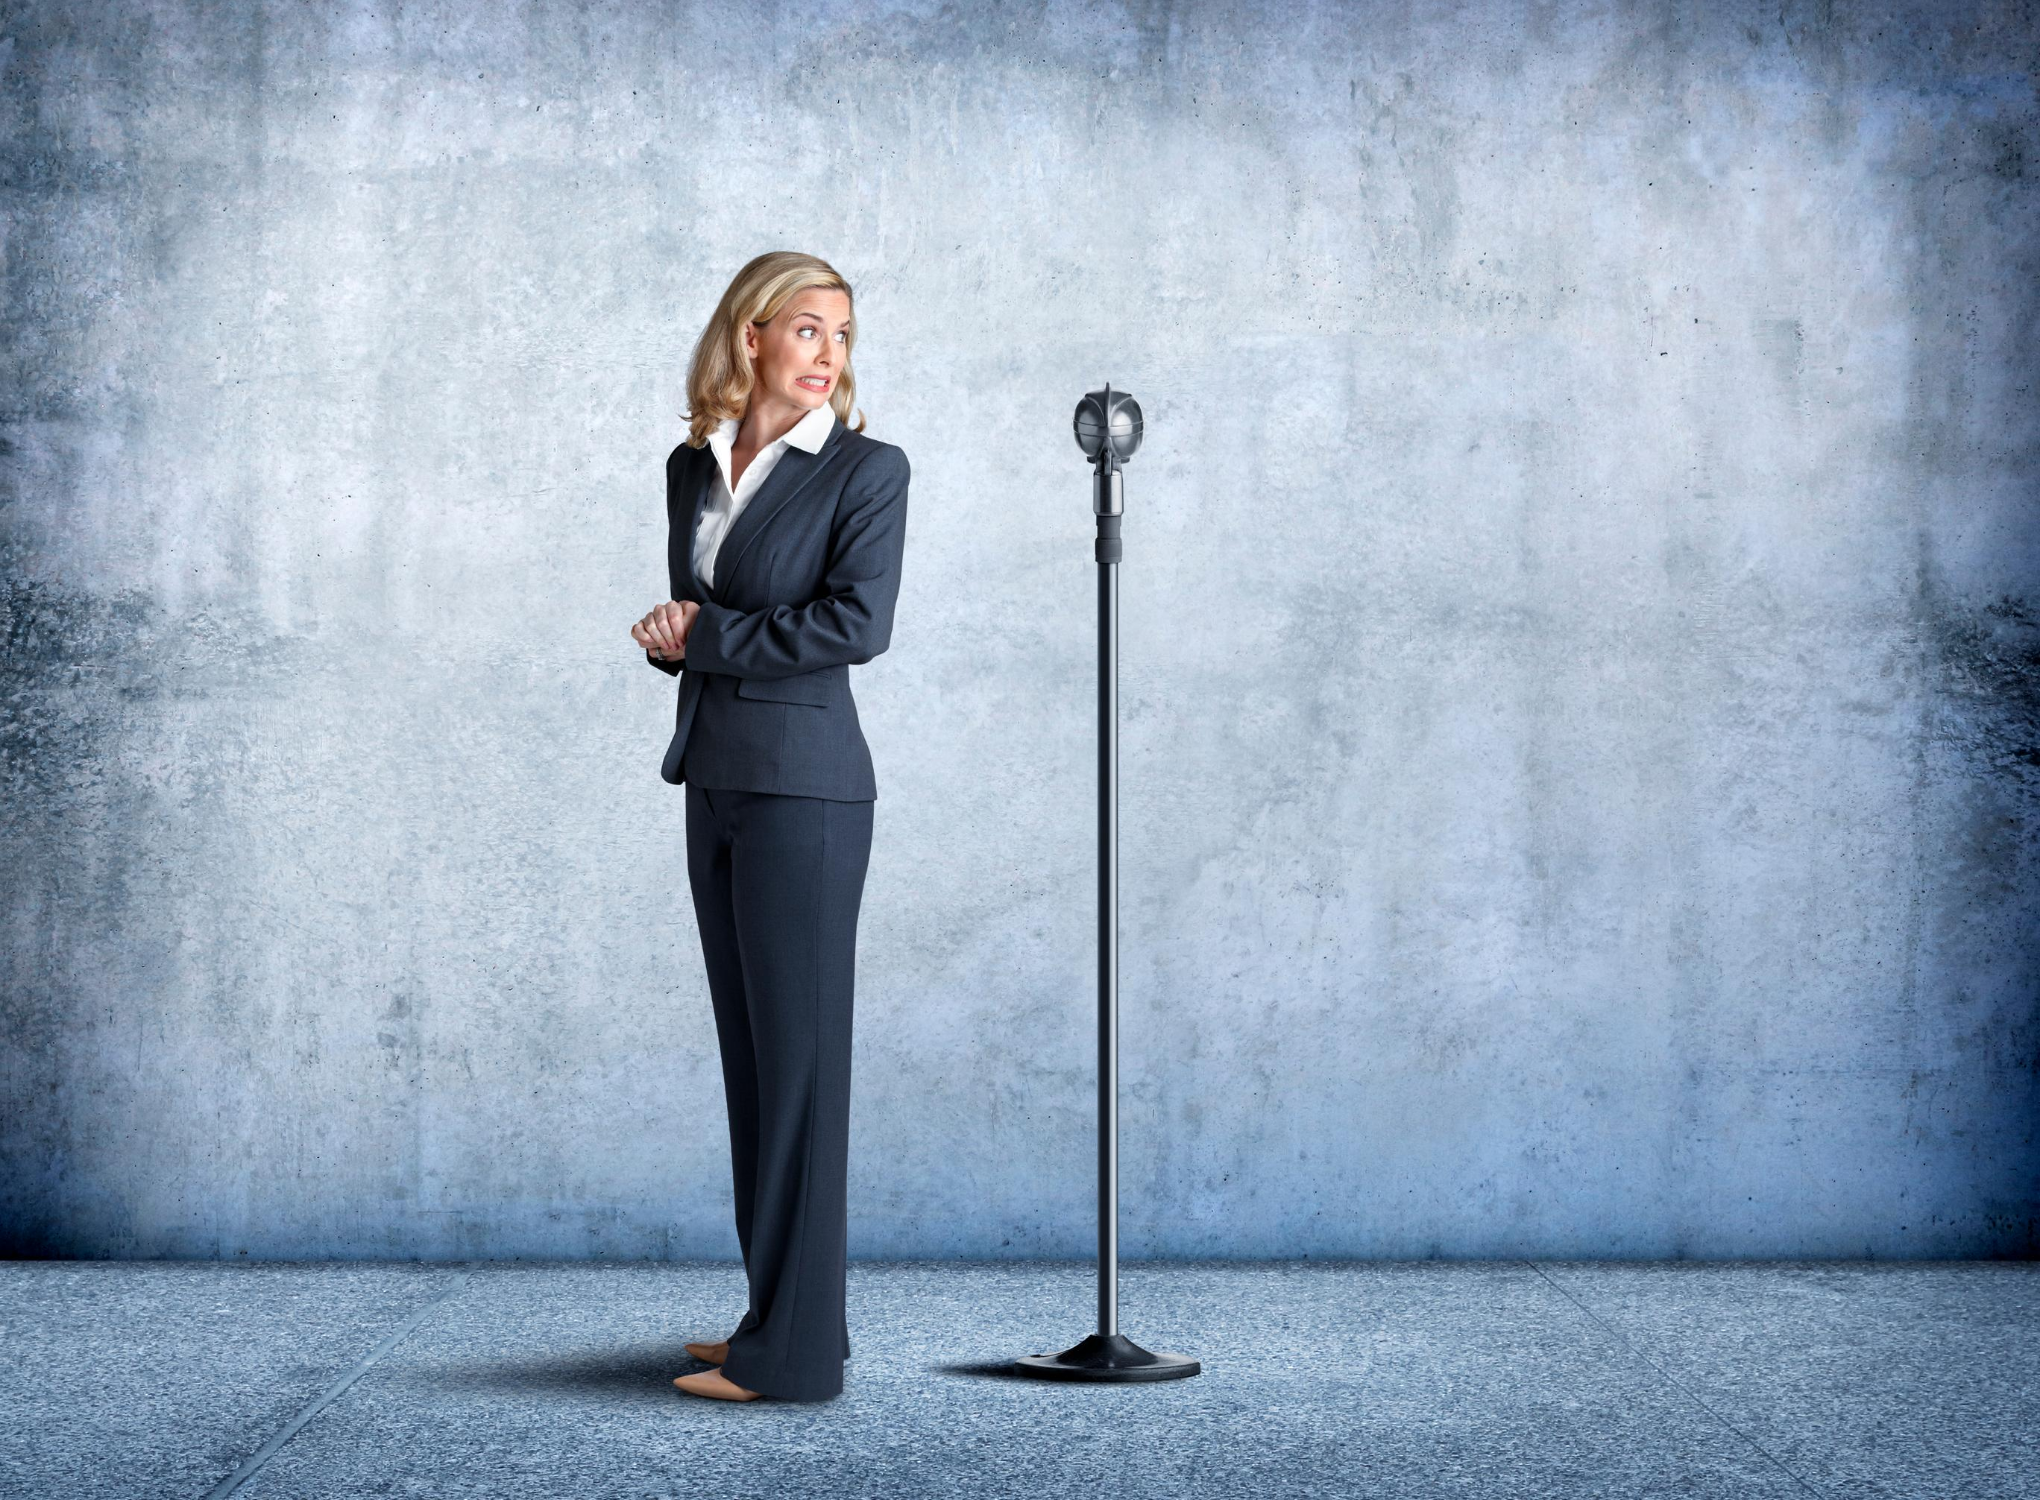 A businesswoman sheepishly turns her back to a microphone as she is exhibits fear of public speaking.